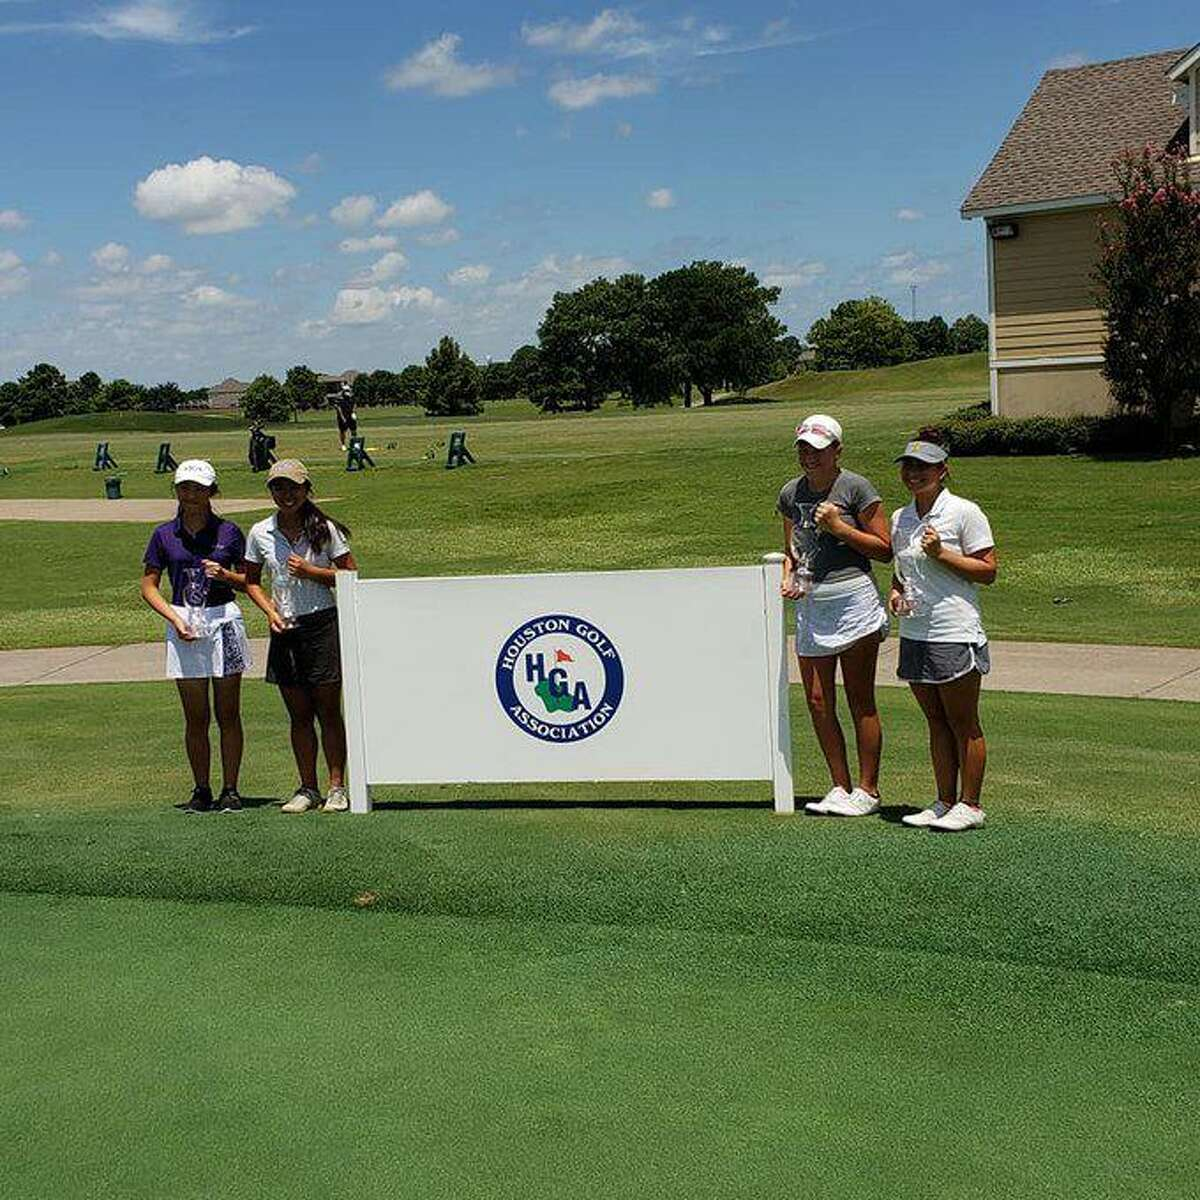 Houston City Junior Championships semifinalists Natalie Cao, Jacqueline Nguyen, Mallorie Luitwieler and Valerie Routzong pose with their trophies following match play July 18 at Cypress Lakes Golf Club.